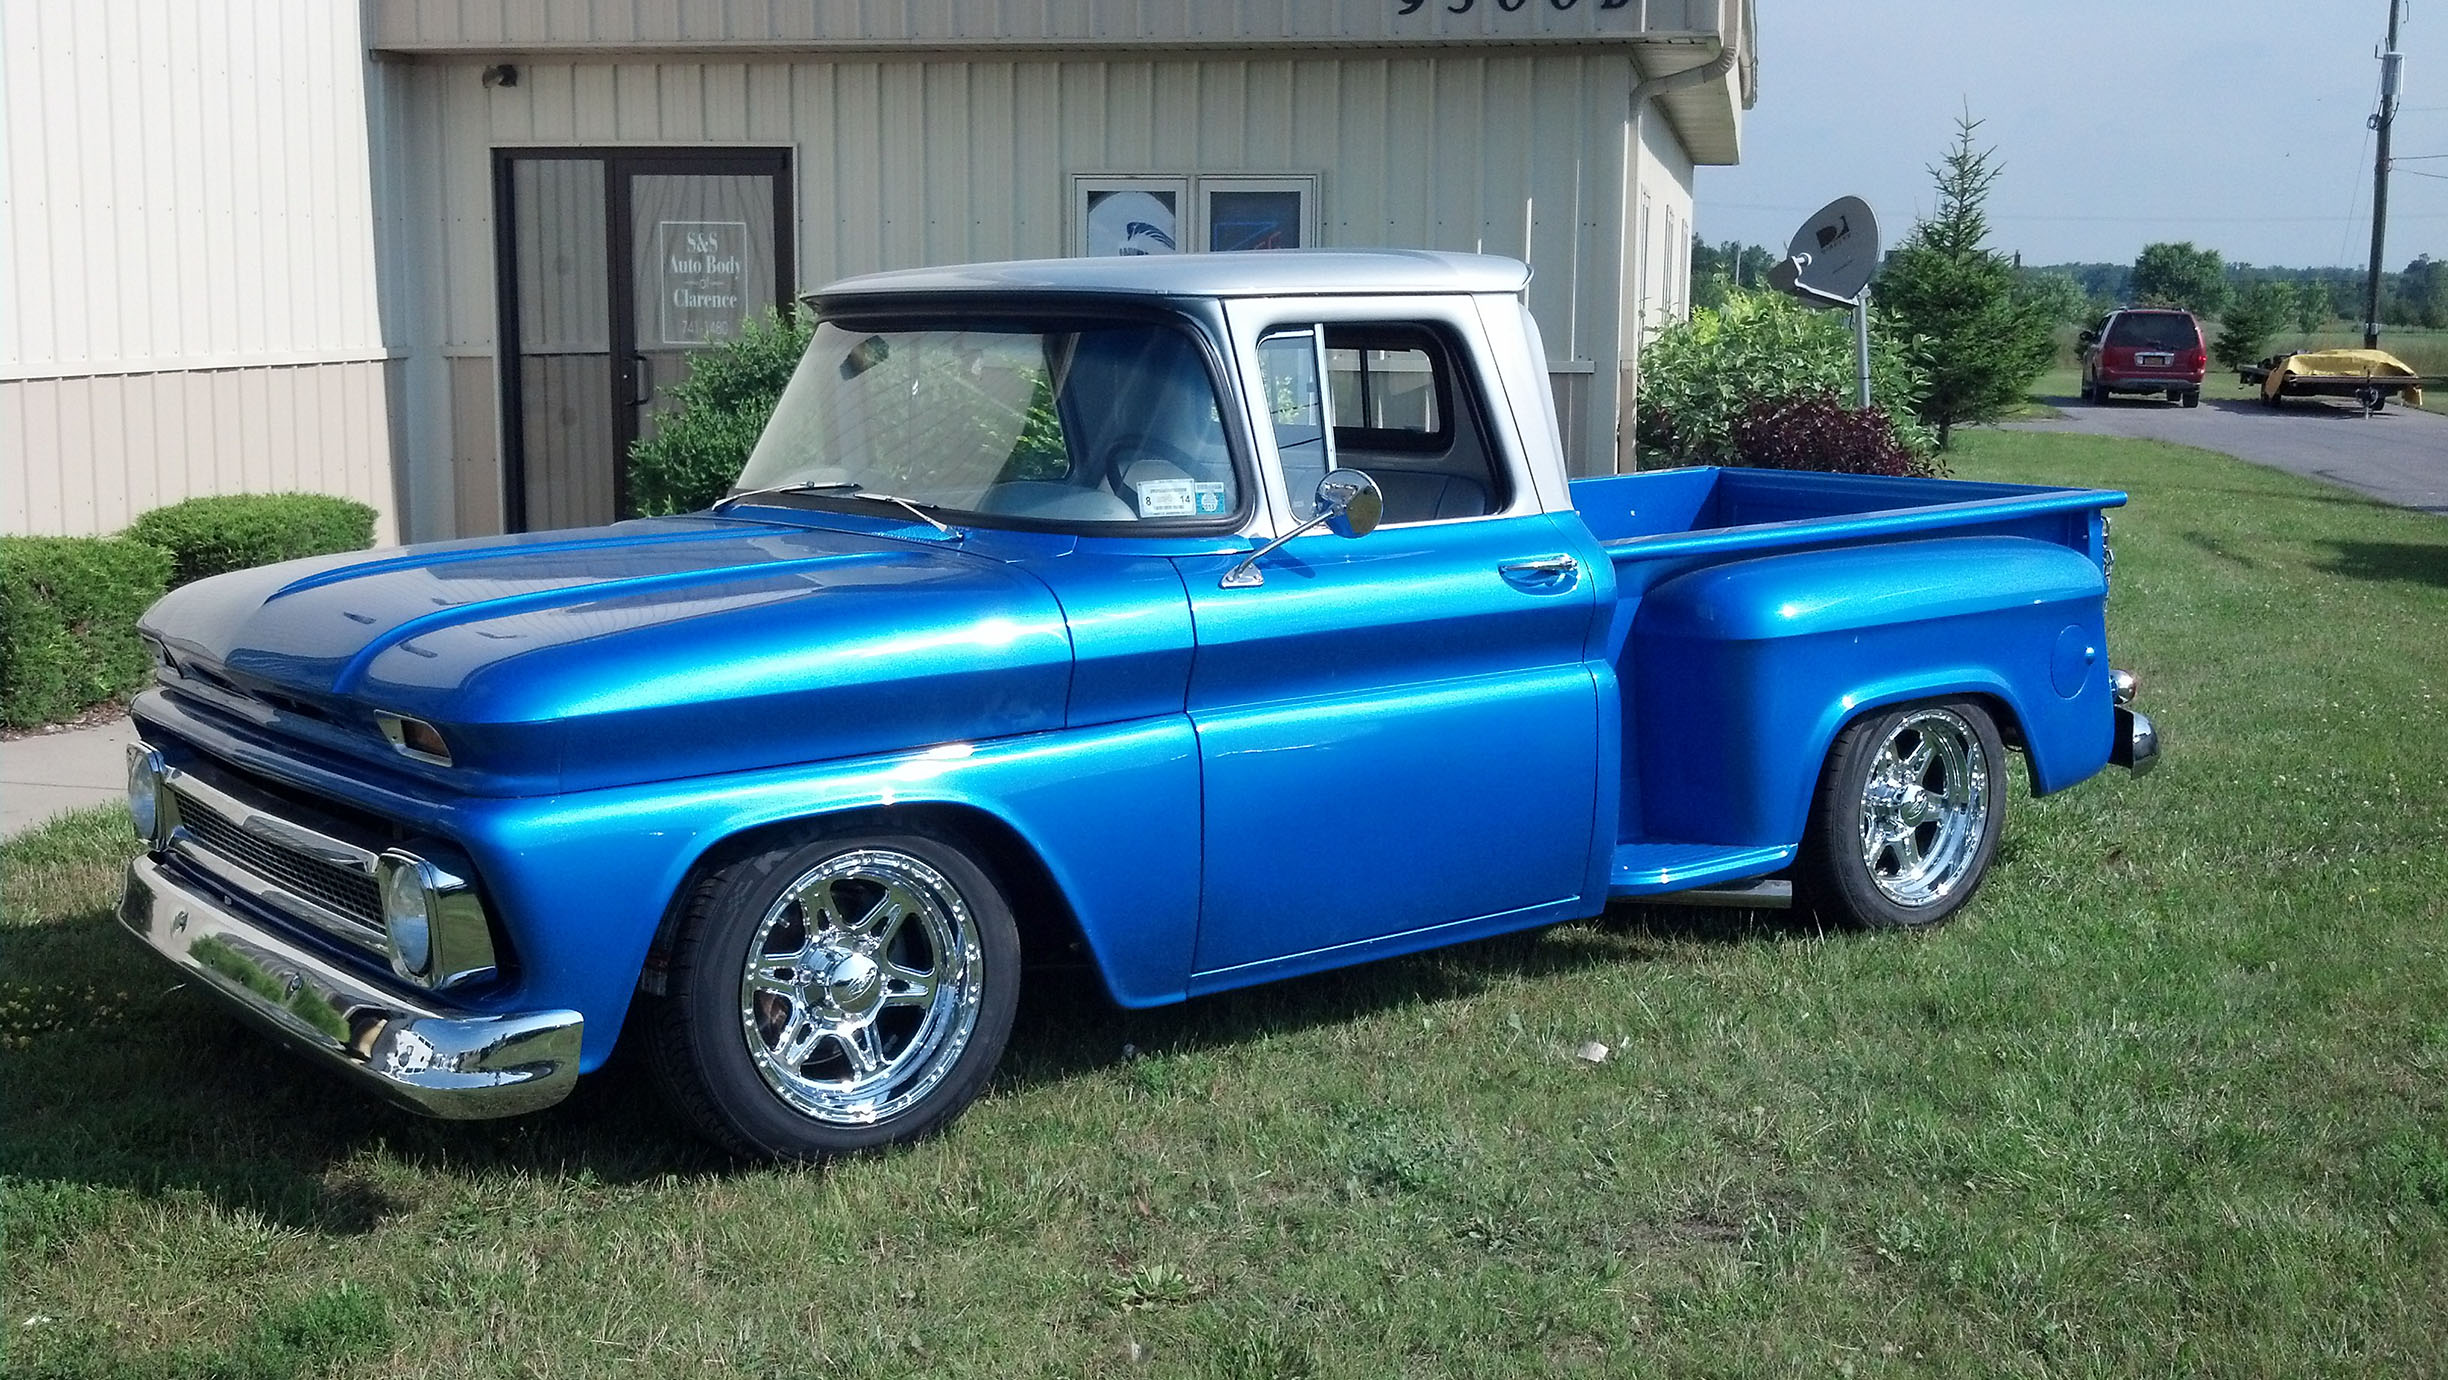 1963 Chevy Truck S S Auto Body Of Clarence Inc